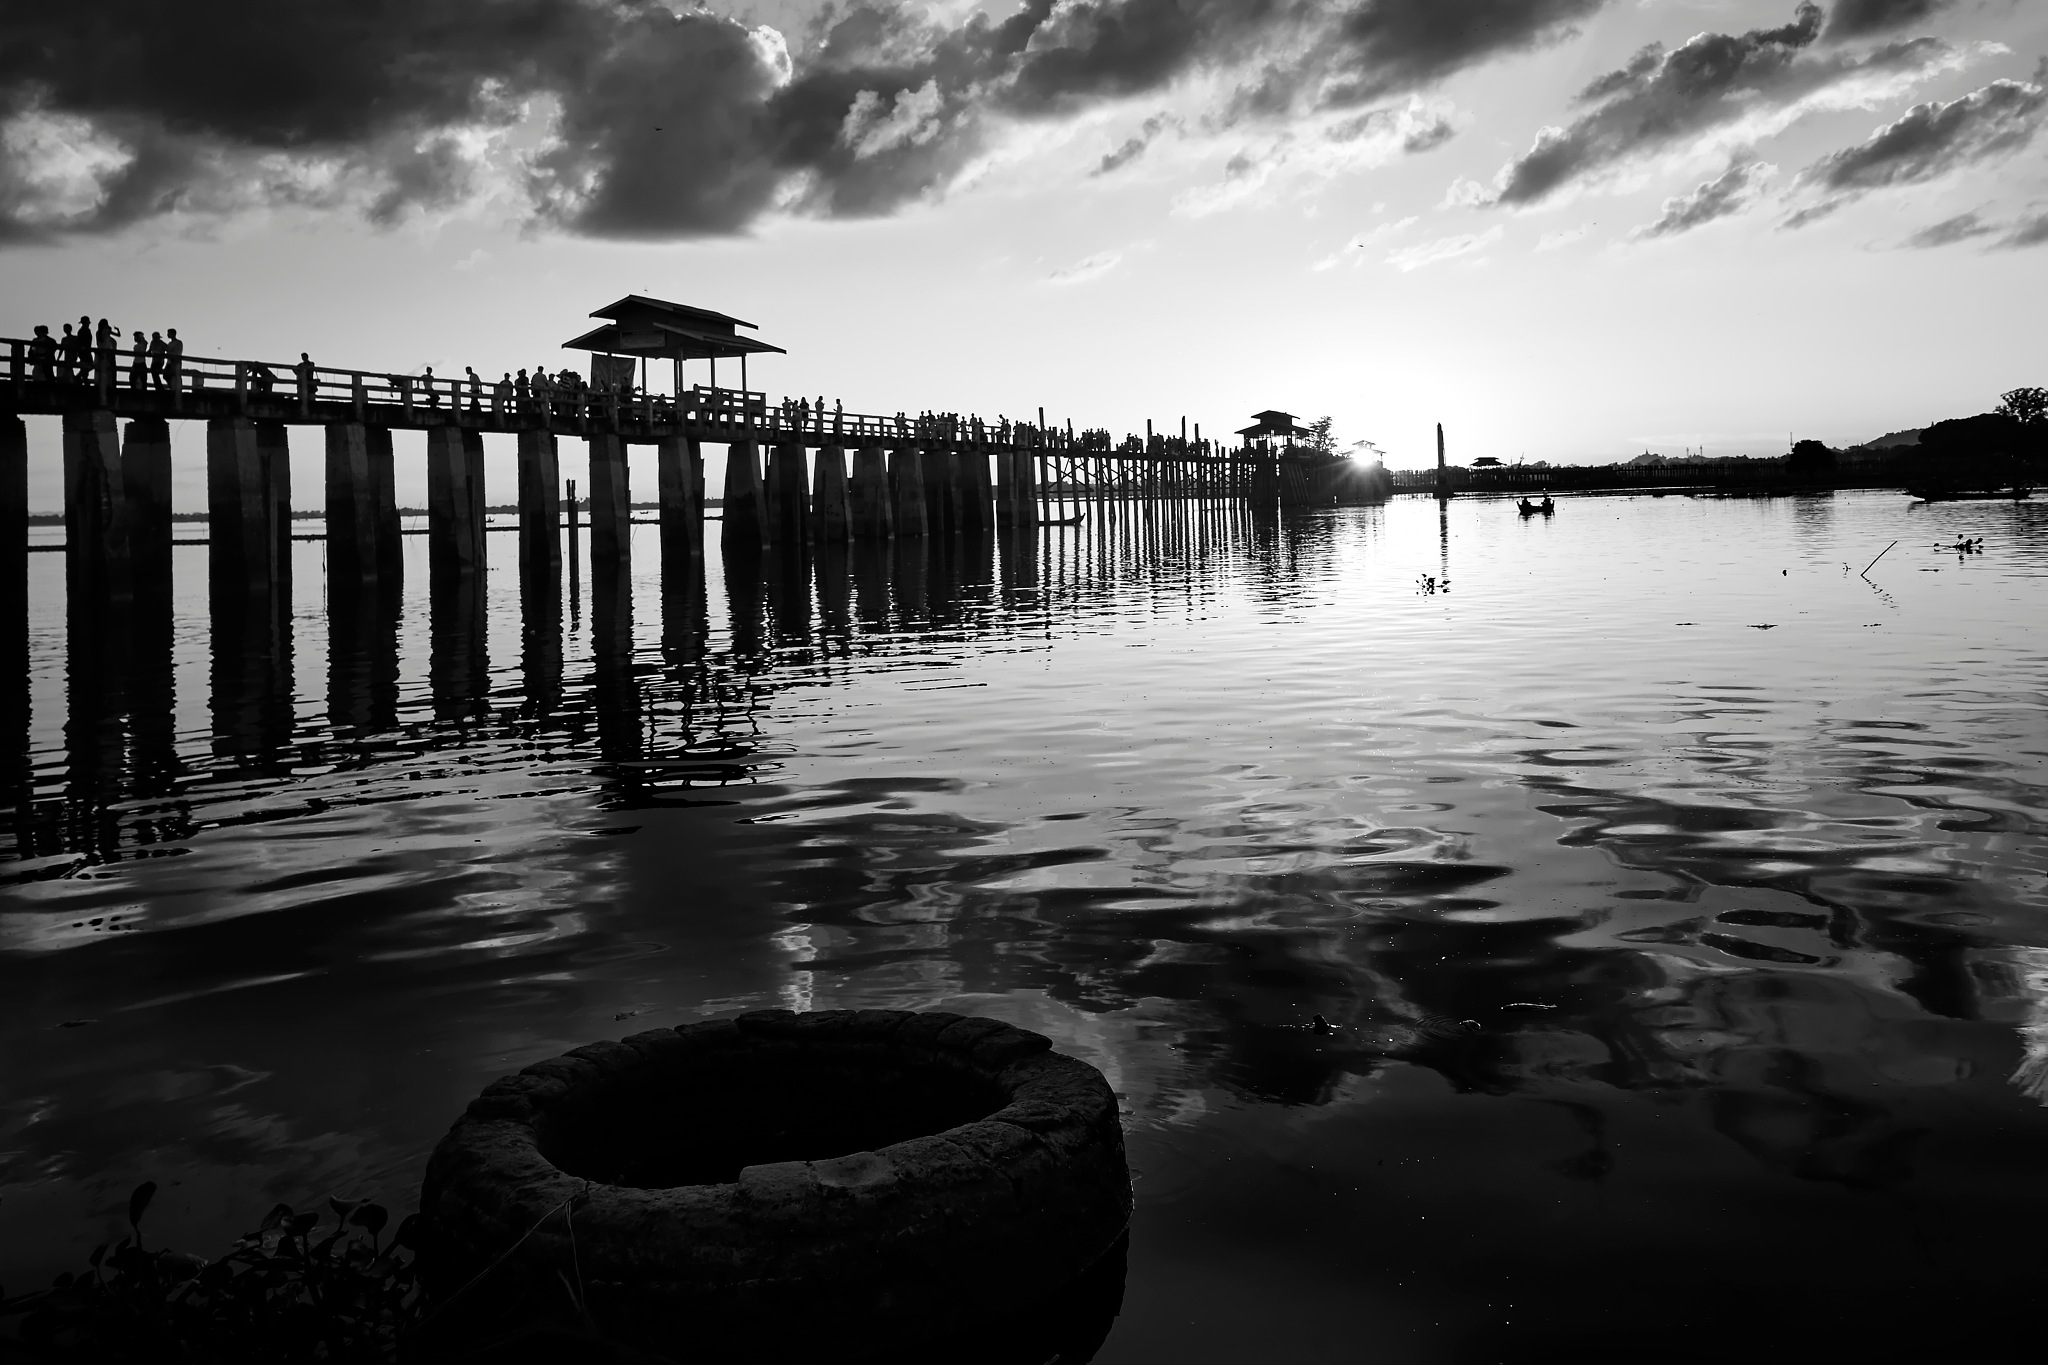 U Pain Bridge by Htet Aung